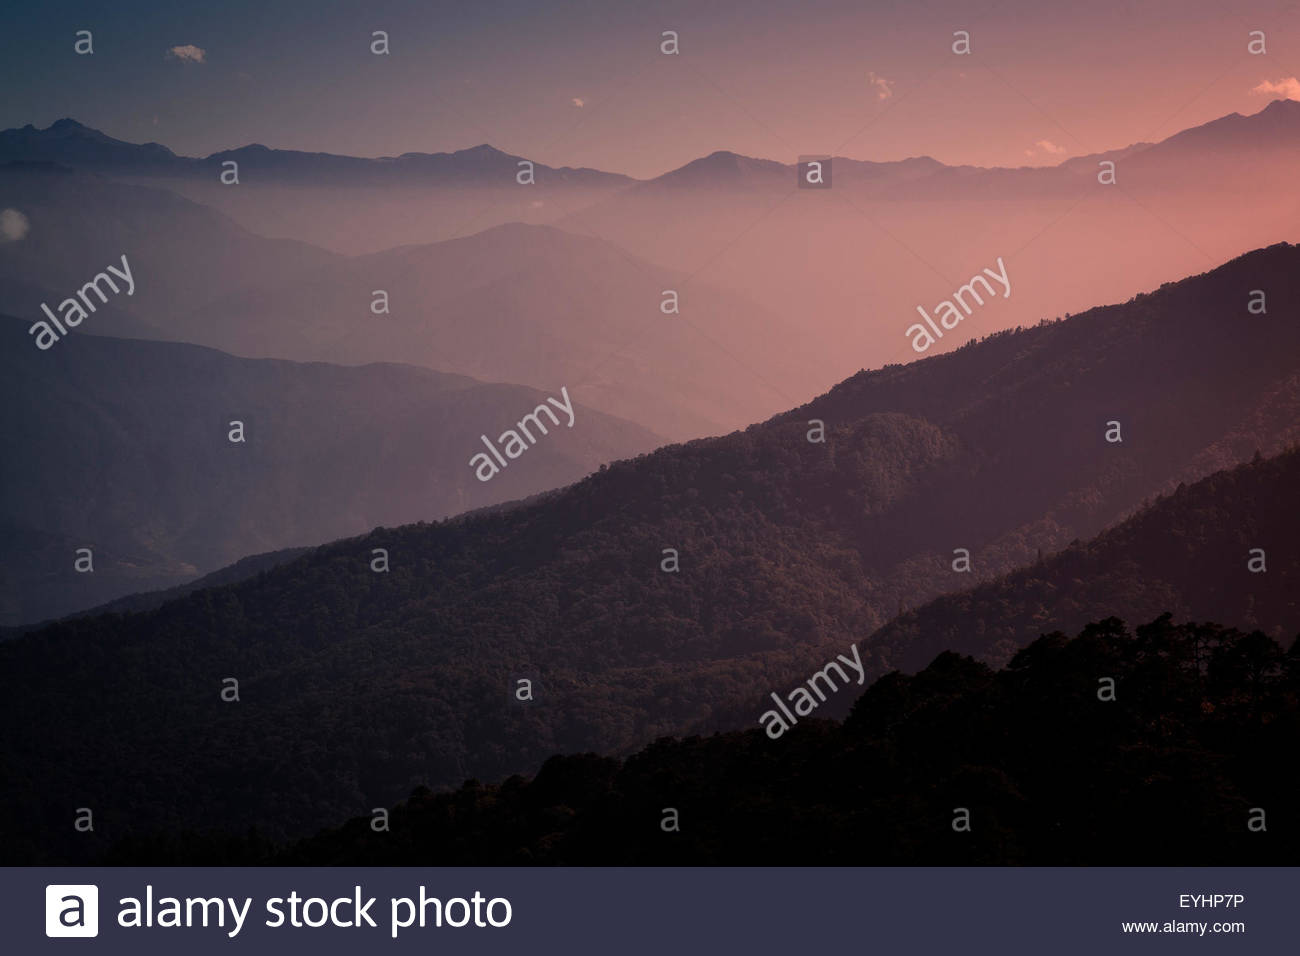 The Himalayan foothills in Bhutan. - Stock Image